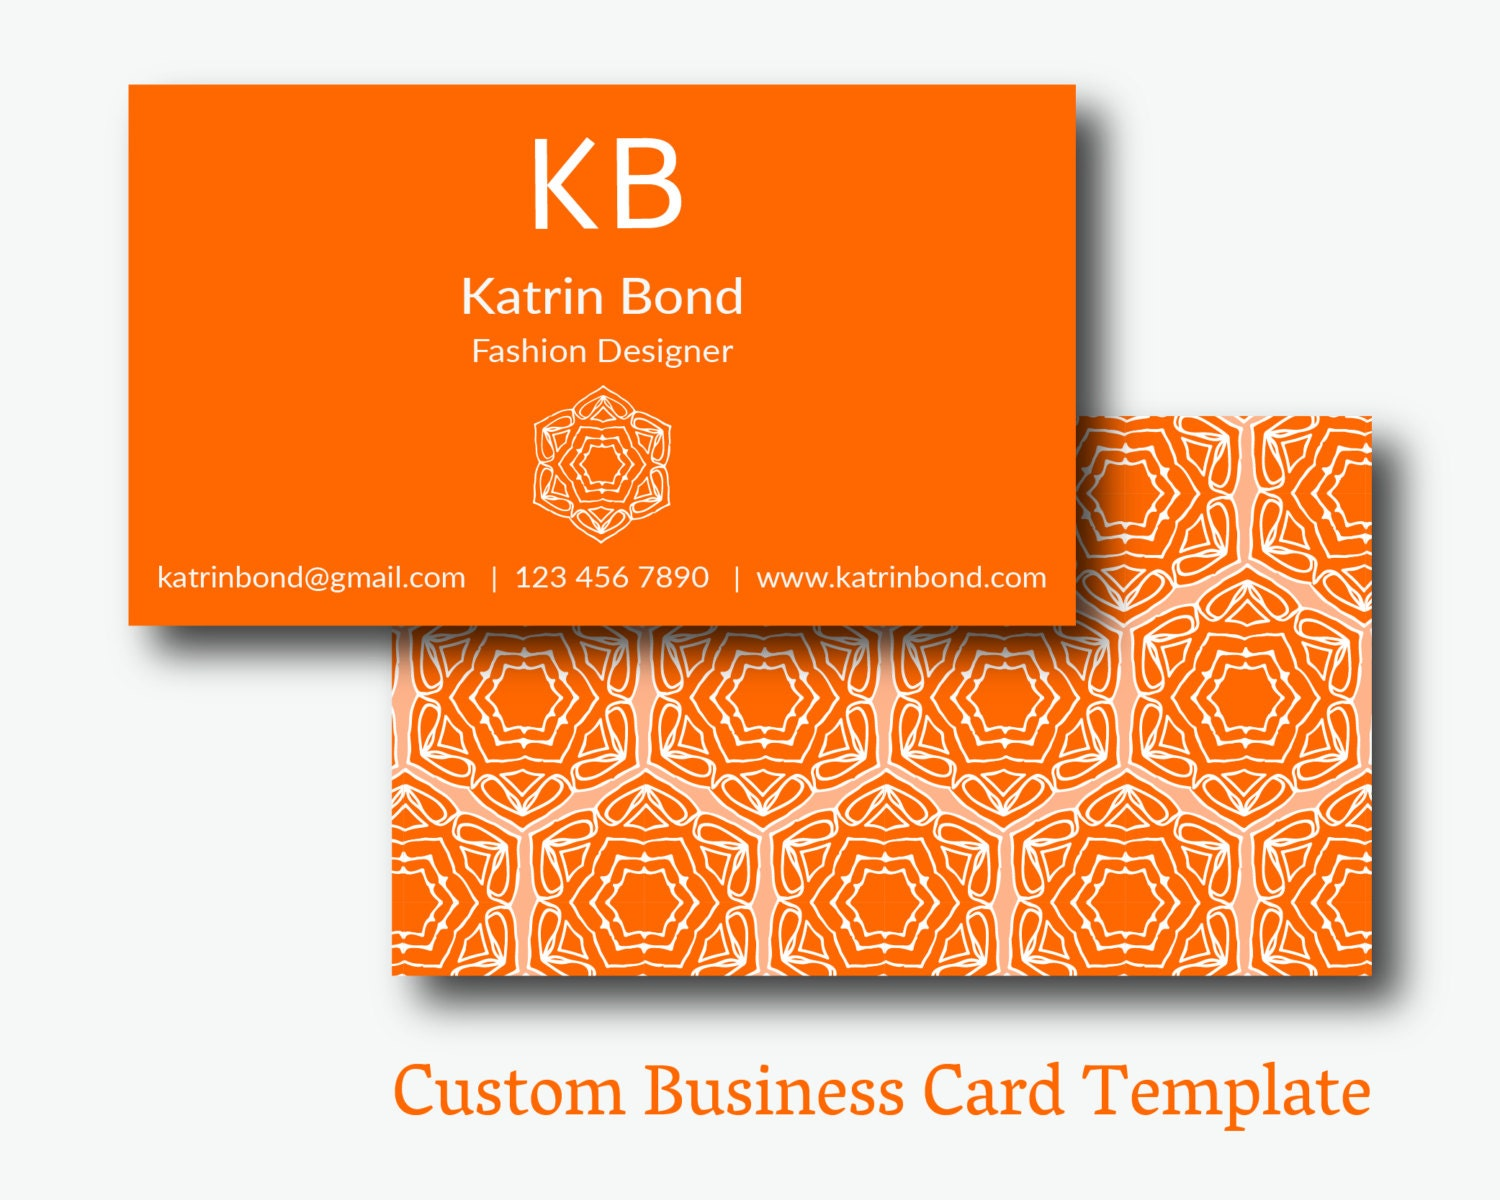 124 photoshop business card templates zetmelo for Photoshop business cards templates